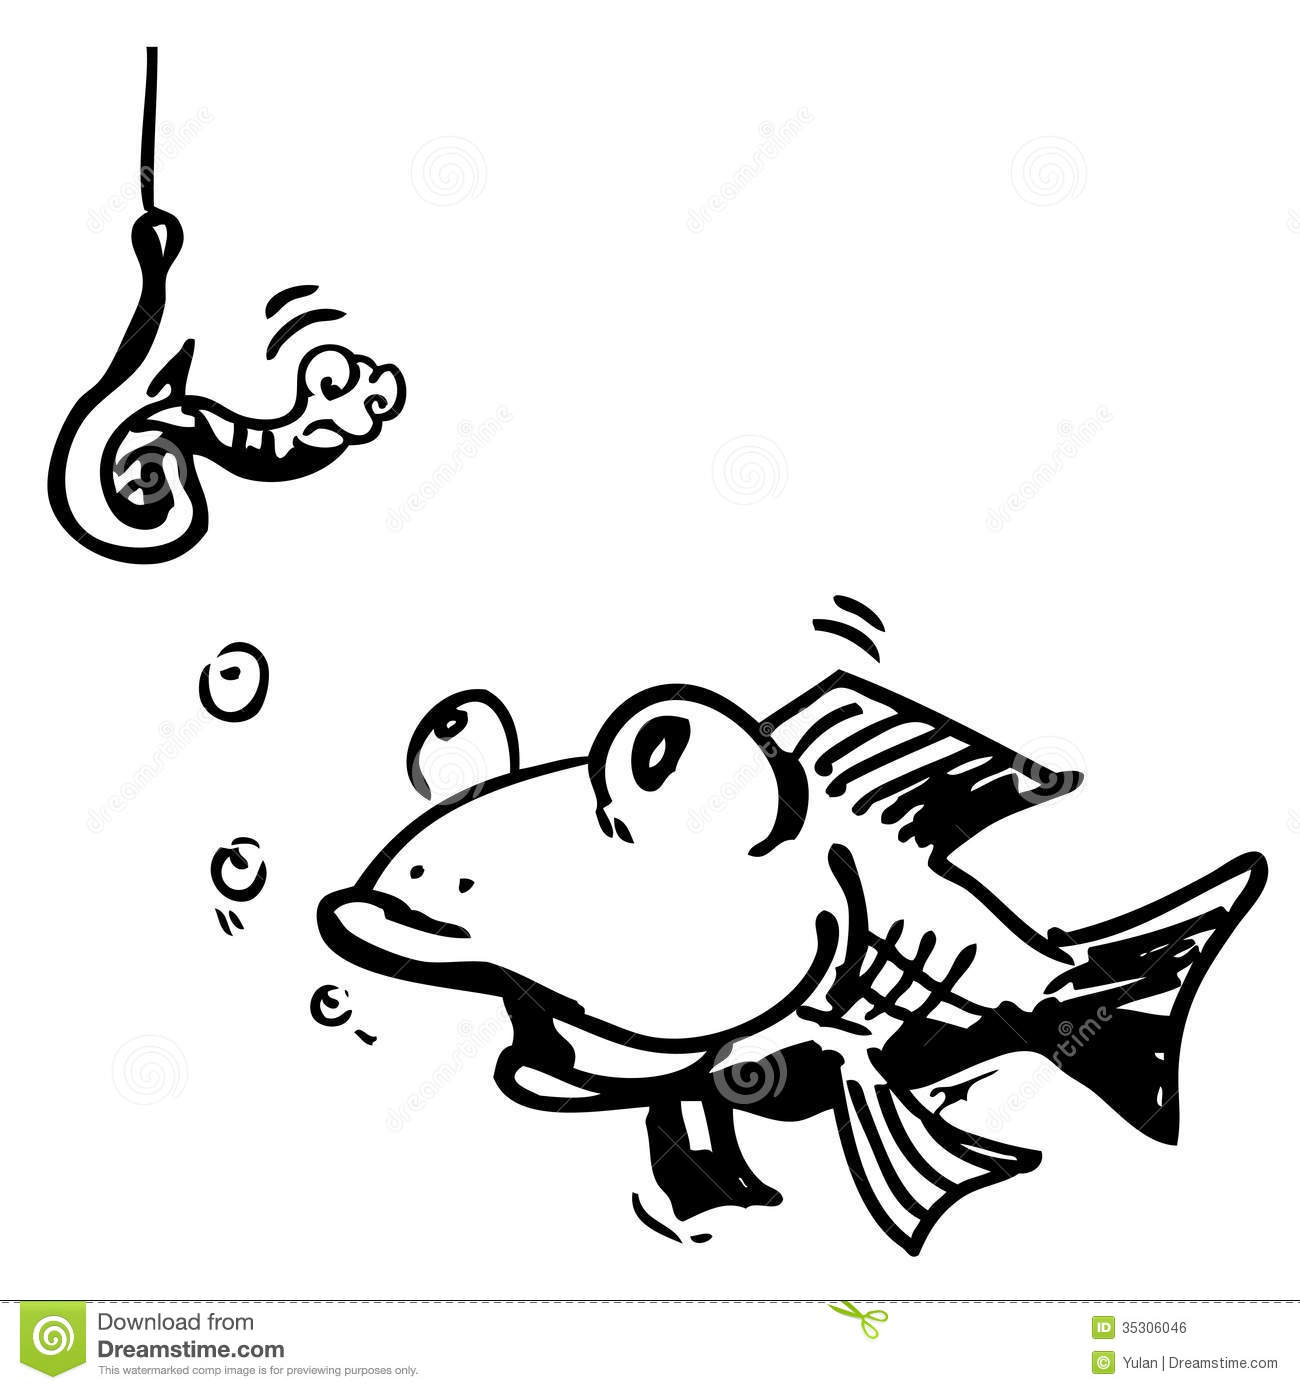 http://www.clipartkid.com/images/53/worm-on-bait-challenges-a-fish-royalty-free-stock-image-image-lHhrjo-clipart.jpg